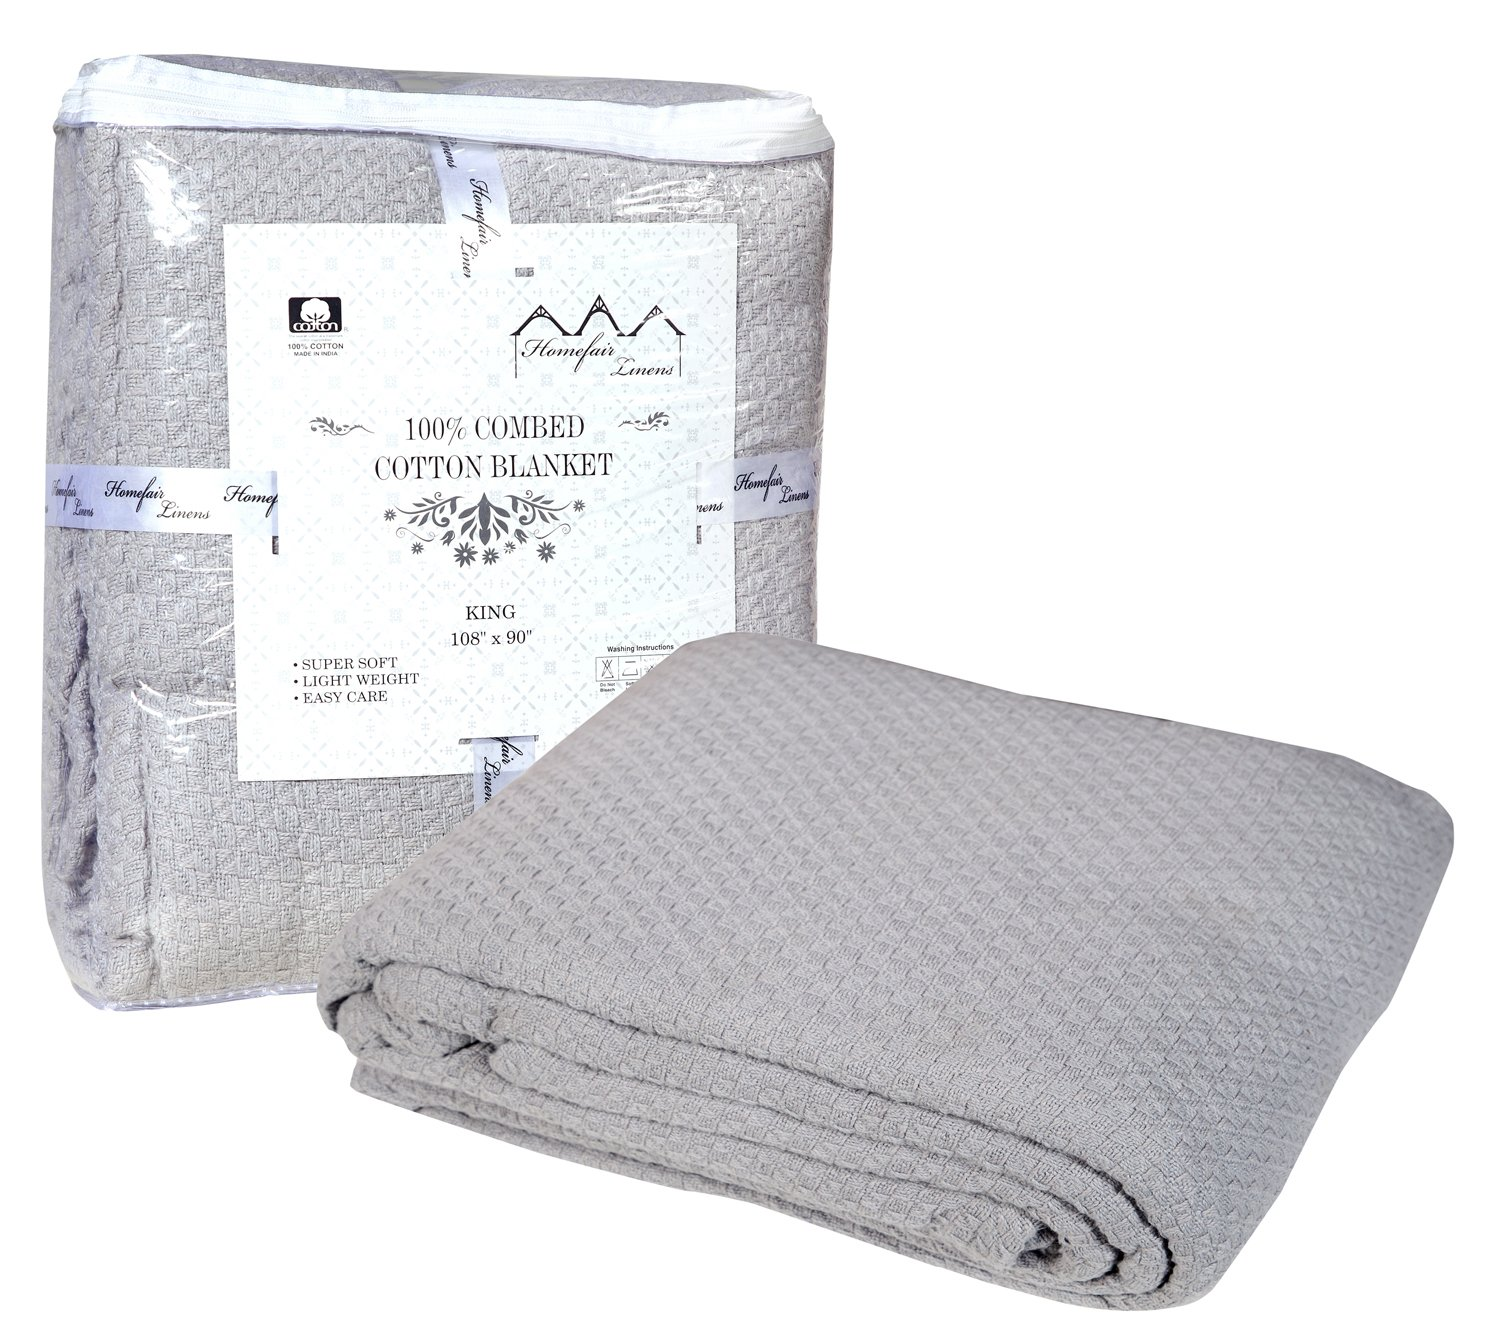 Homefair linens 100% Premium Soft Cotton Blanket - Queen Blanket- Thermal Blankets - Soft Cozy & Warm Cotton Blankets- Throw Blankets For Couch- Queen Size Bed Blankets - Silver Queen Cotton Blanket